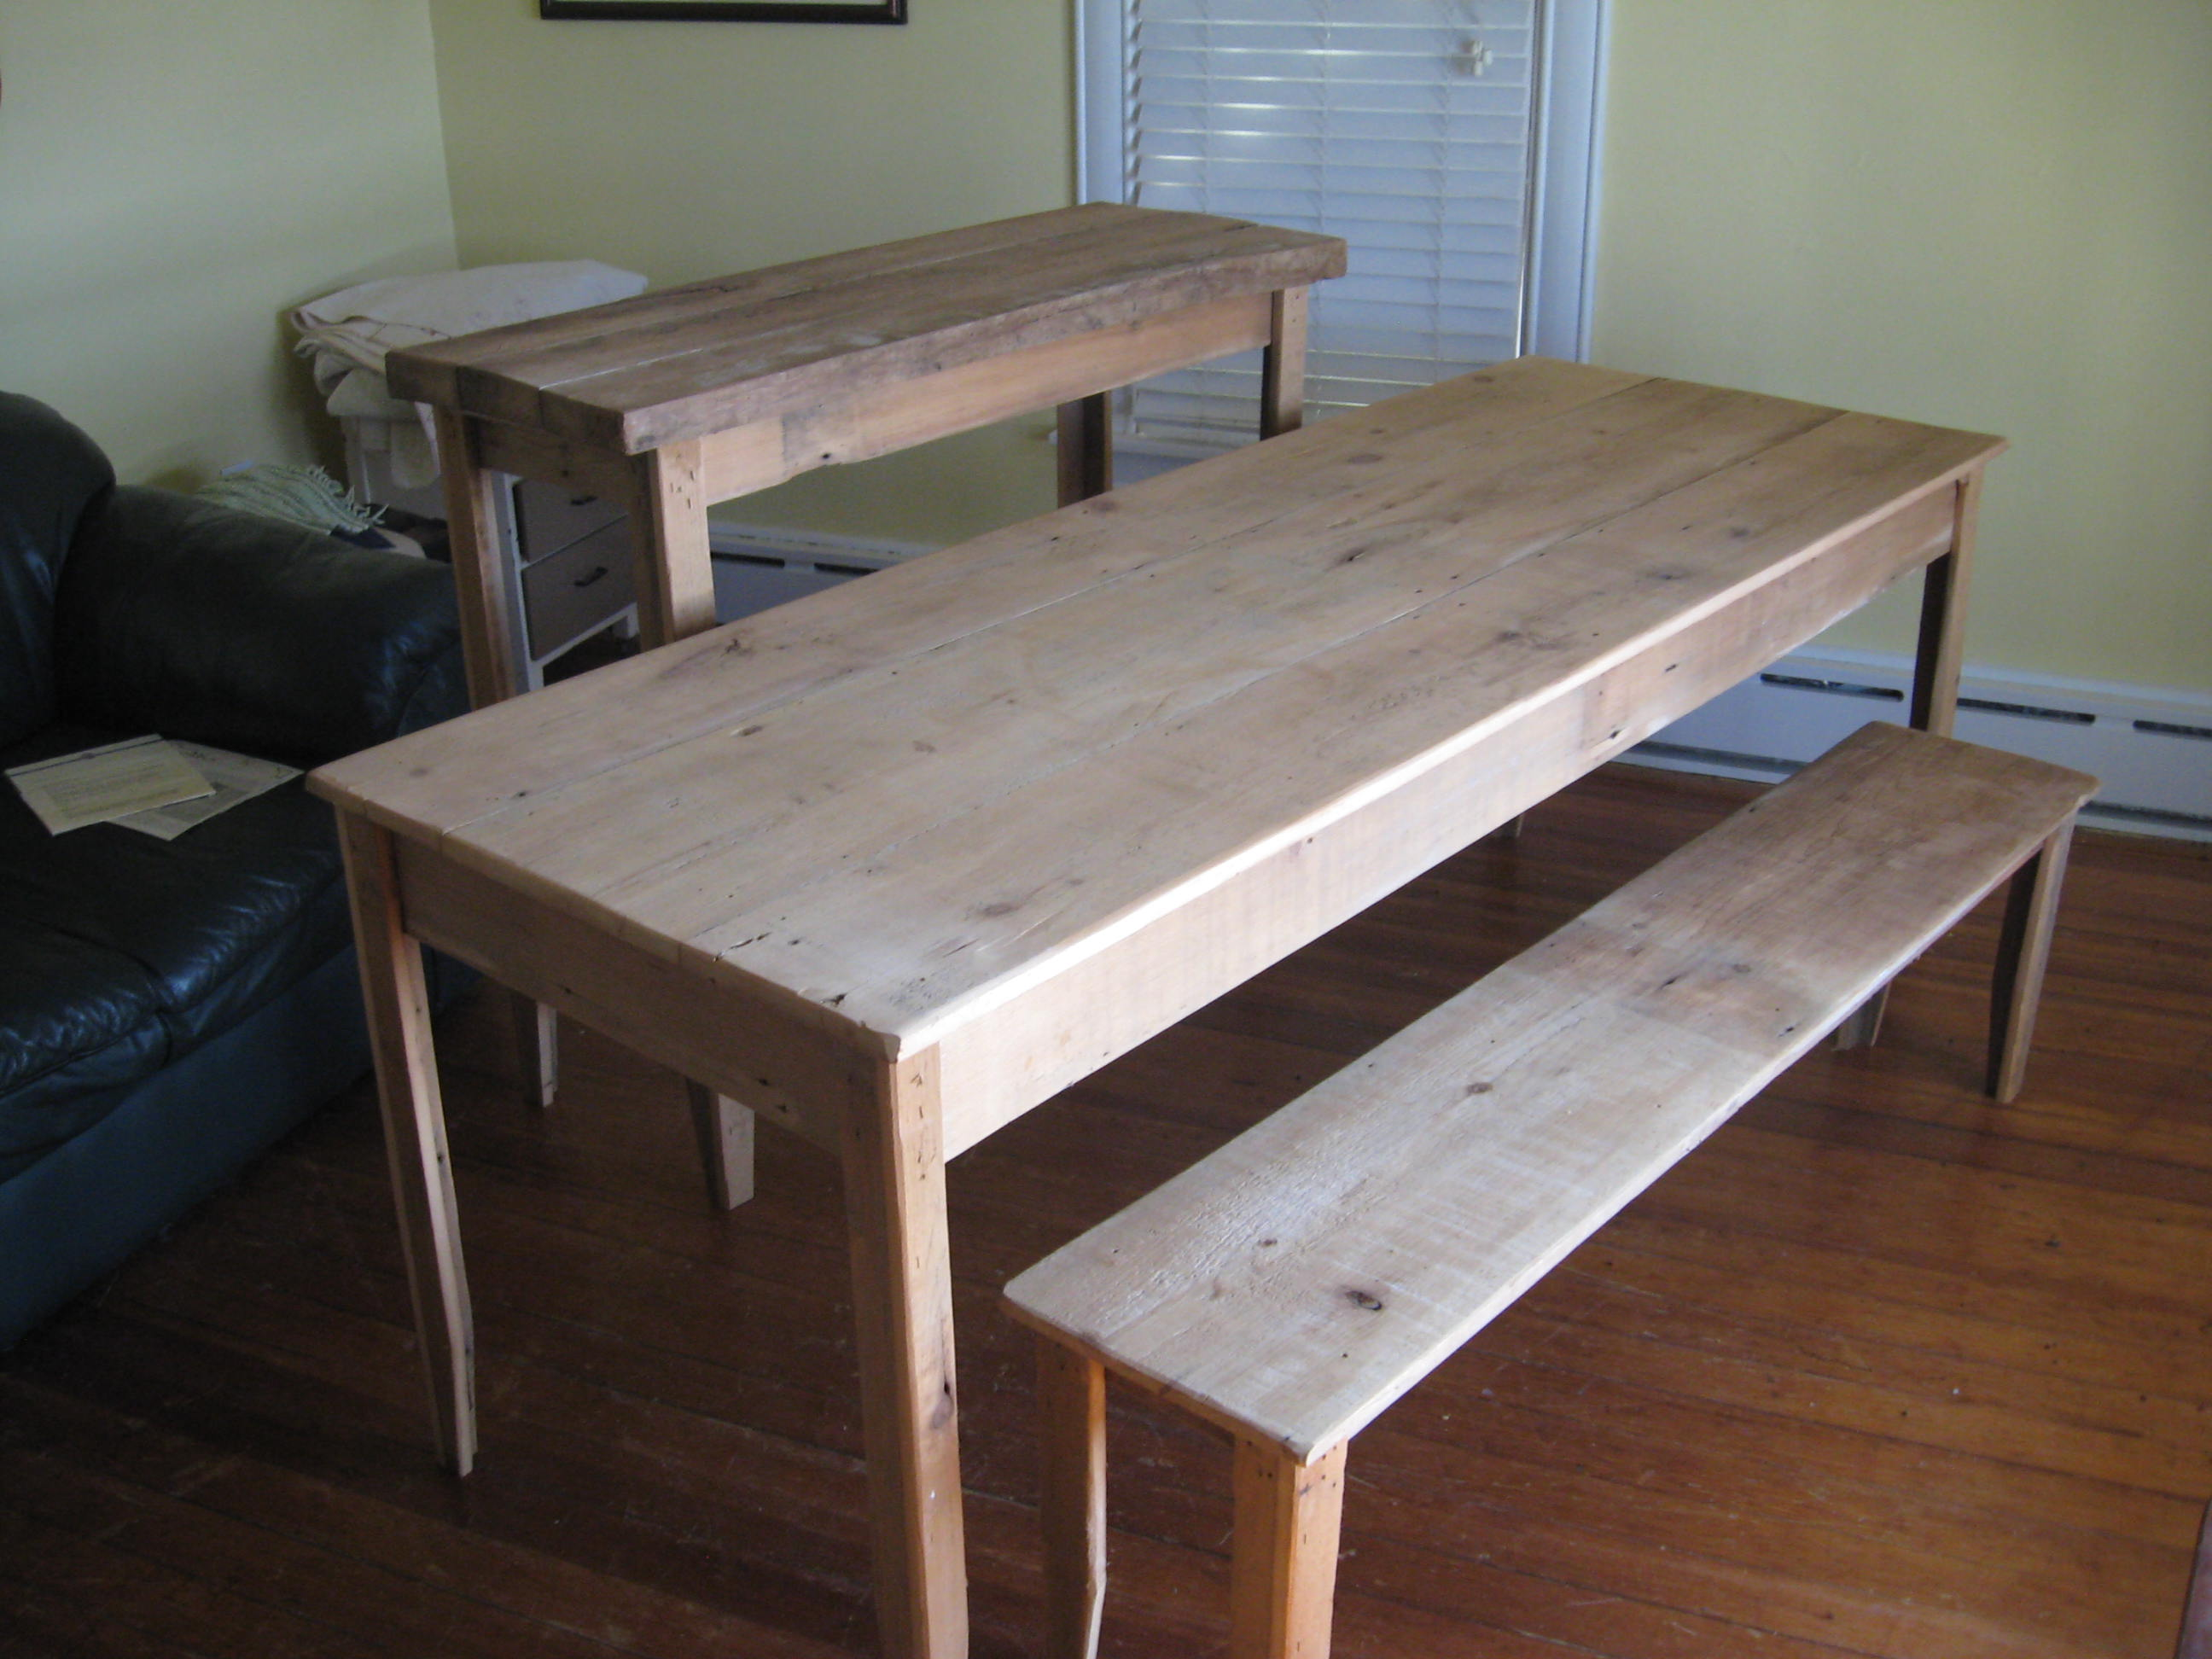 Ordinaire Build Harvest Table Plans Lowes DIY PDF How To Buy A Wood Router |  Actually16zmk